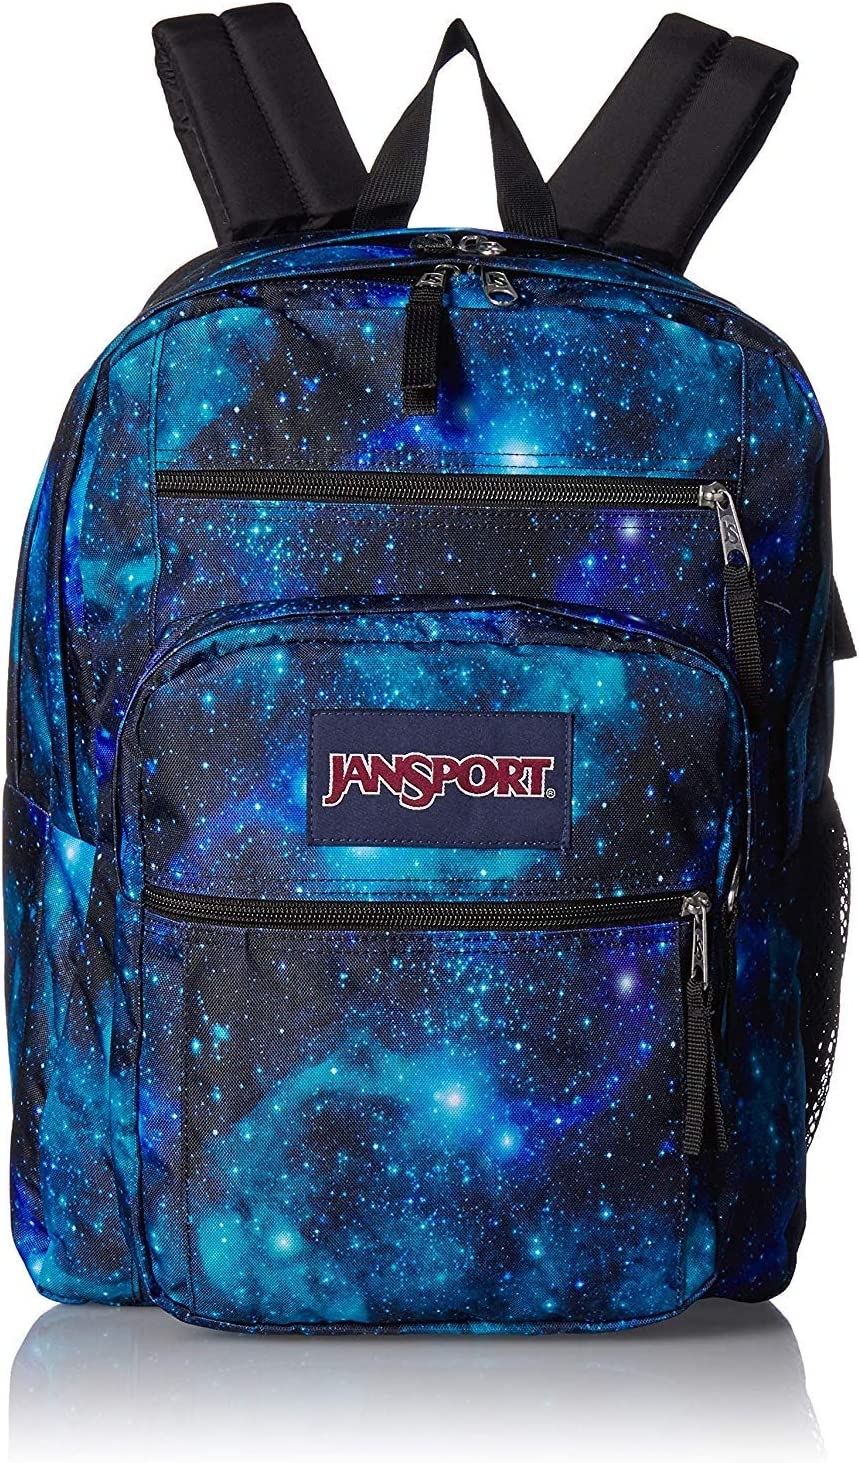 Jansport Gorgeous backpack BIG GALAXY Max 55% OFF STUDENT